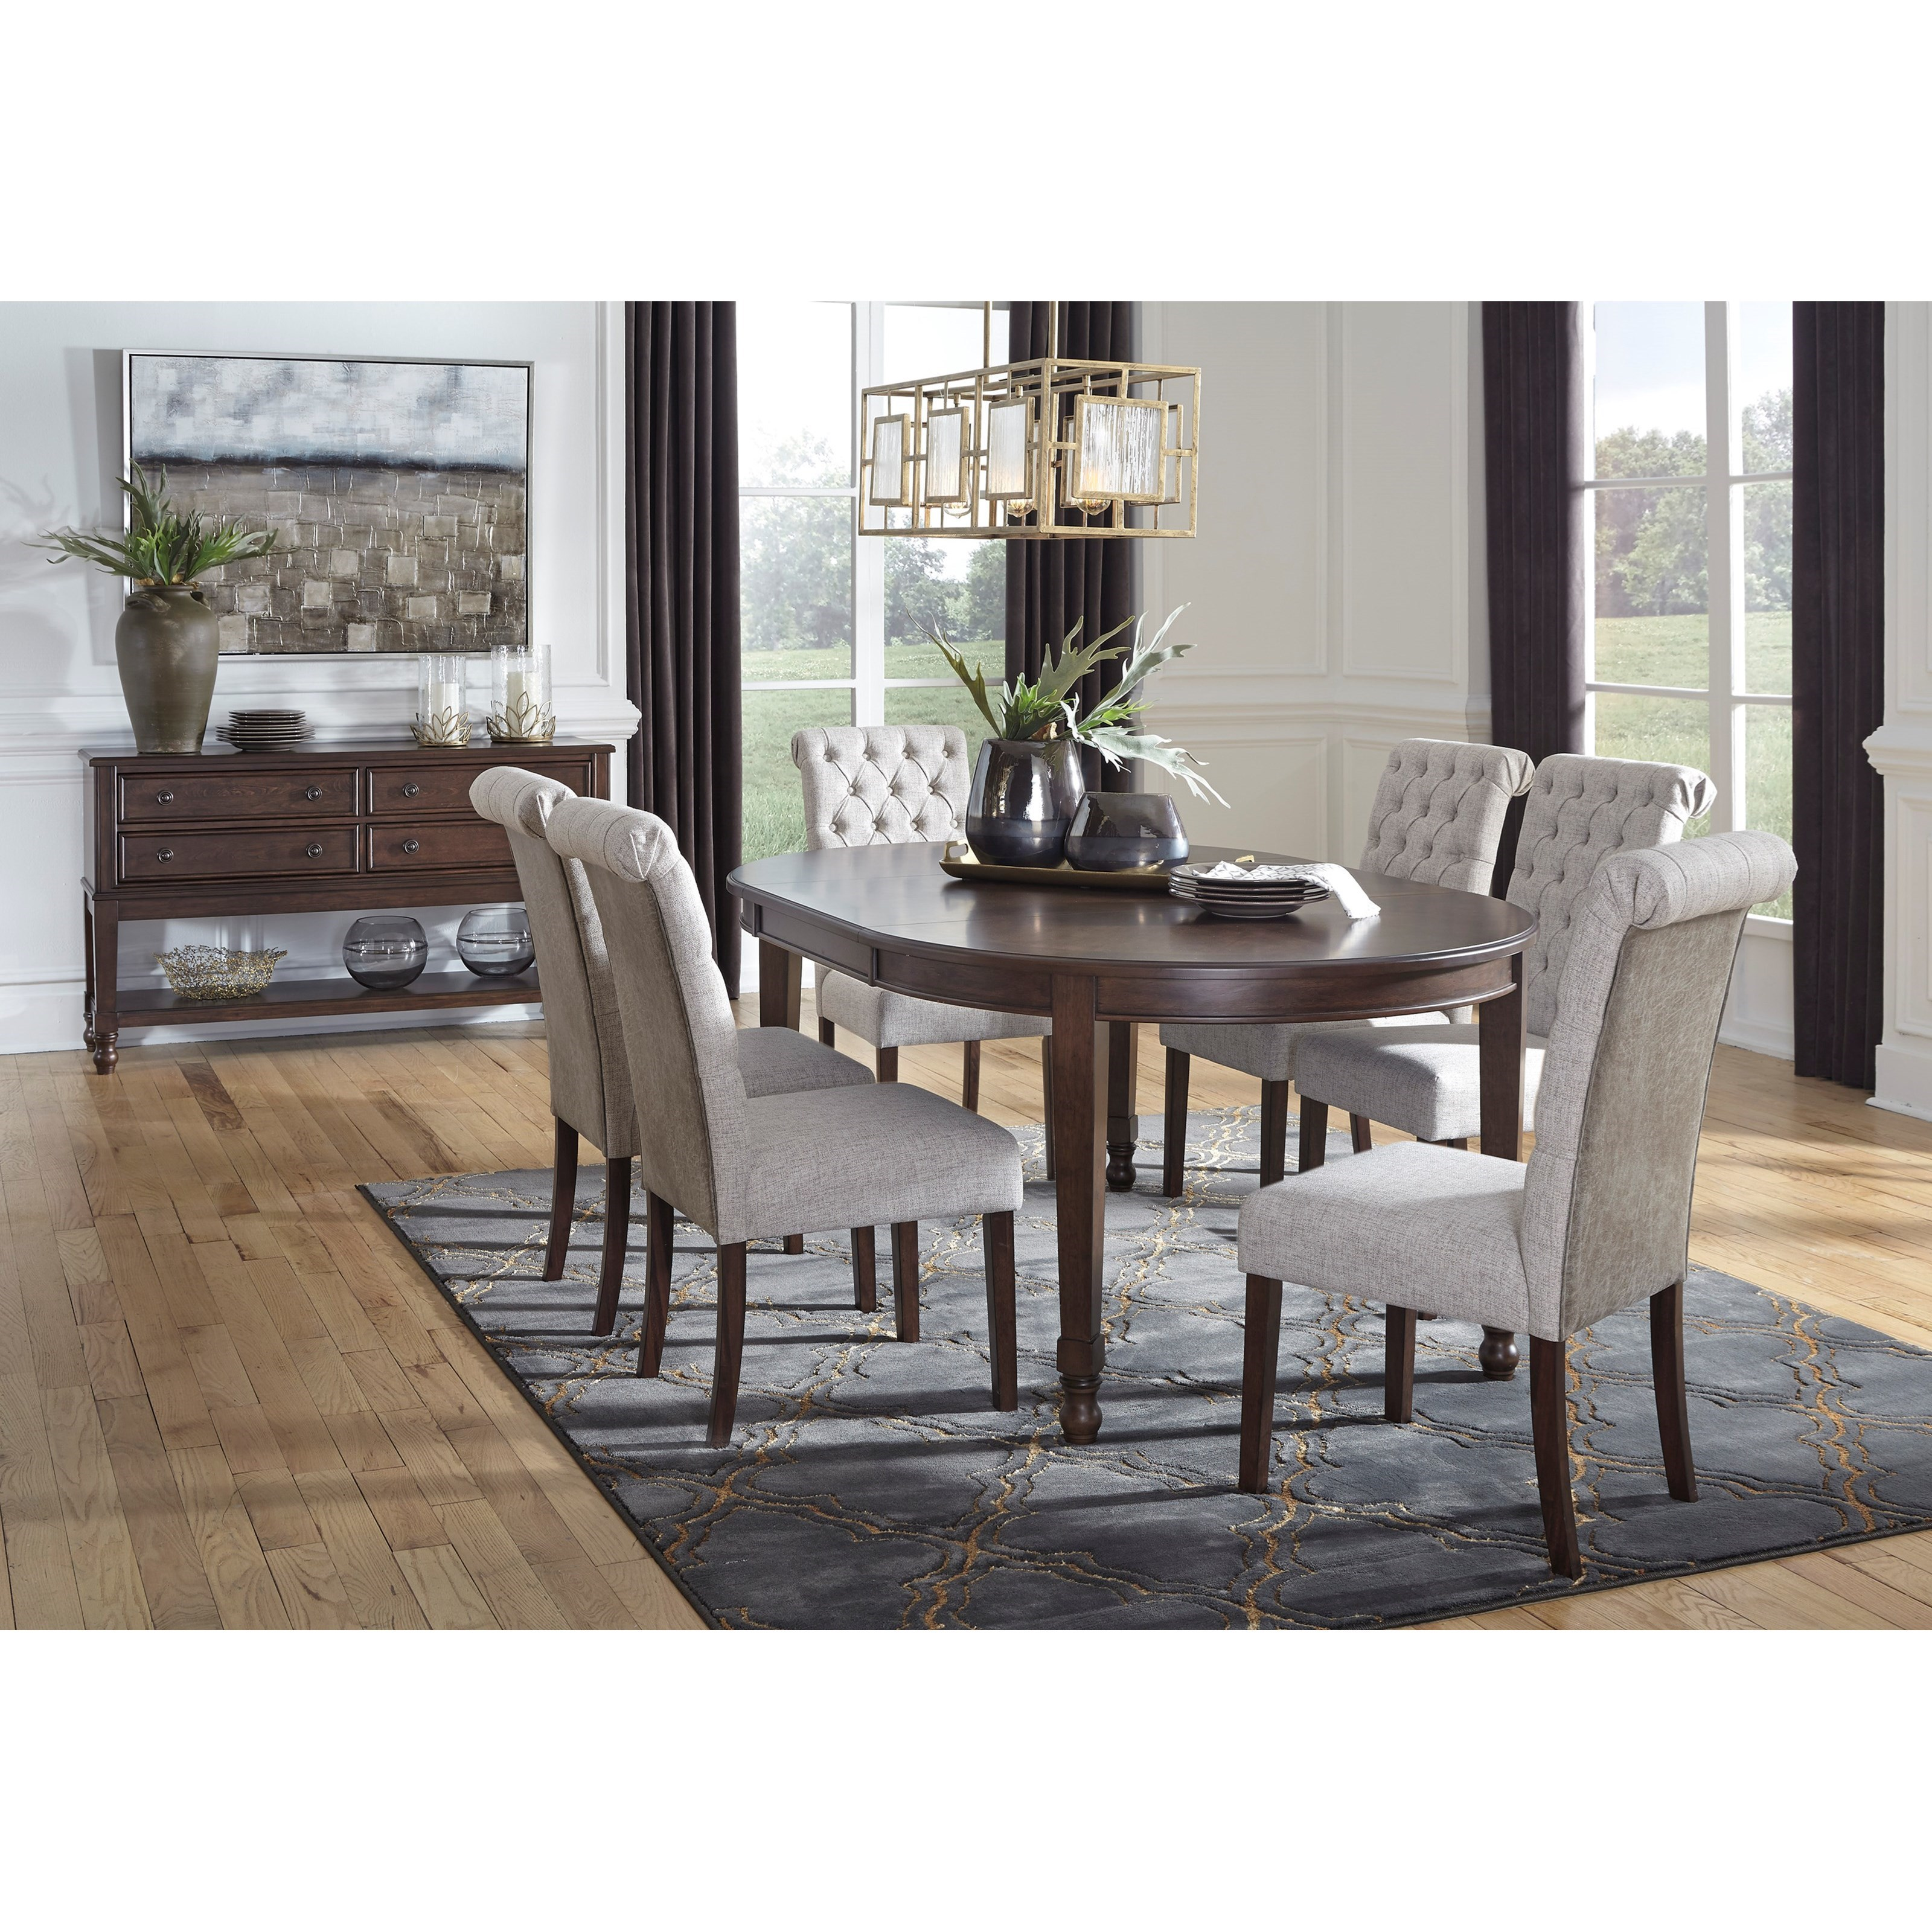 Adinton Formal Dining Room Group by Signature Design by Ashley at Houston's Yuma Furniture